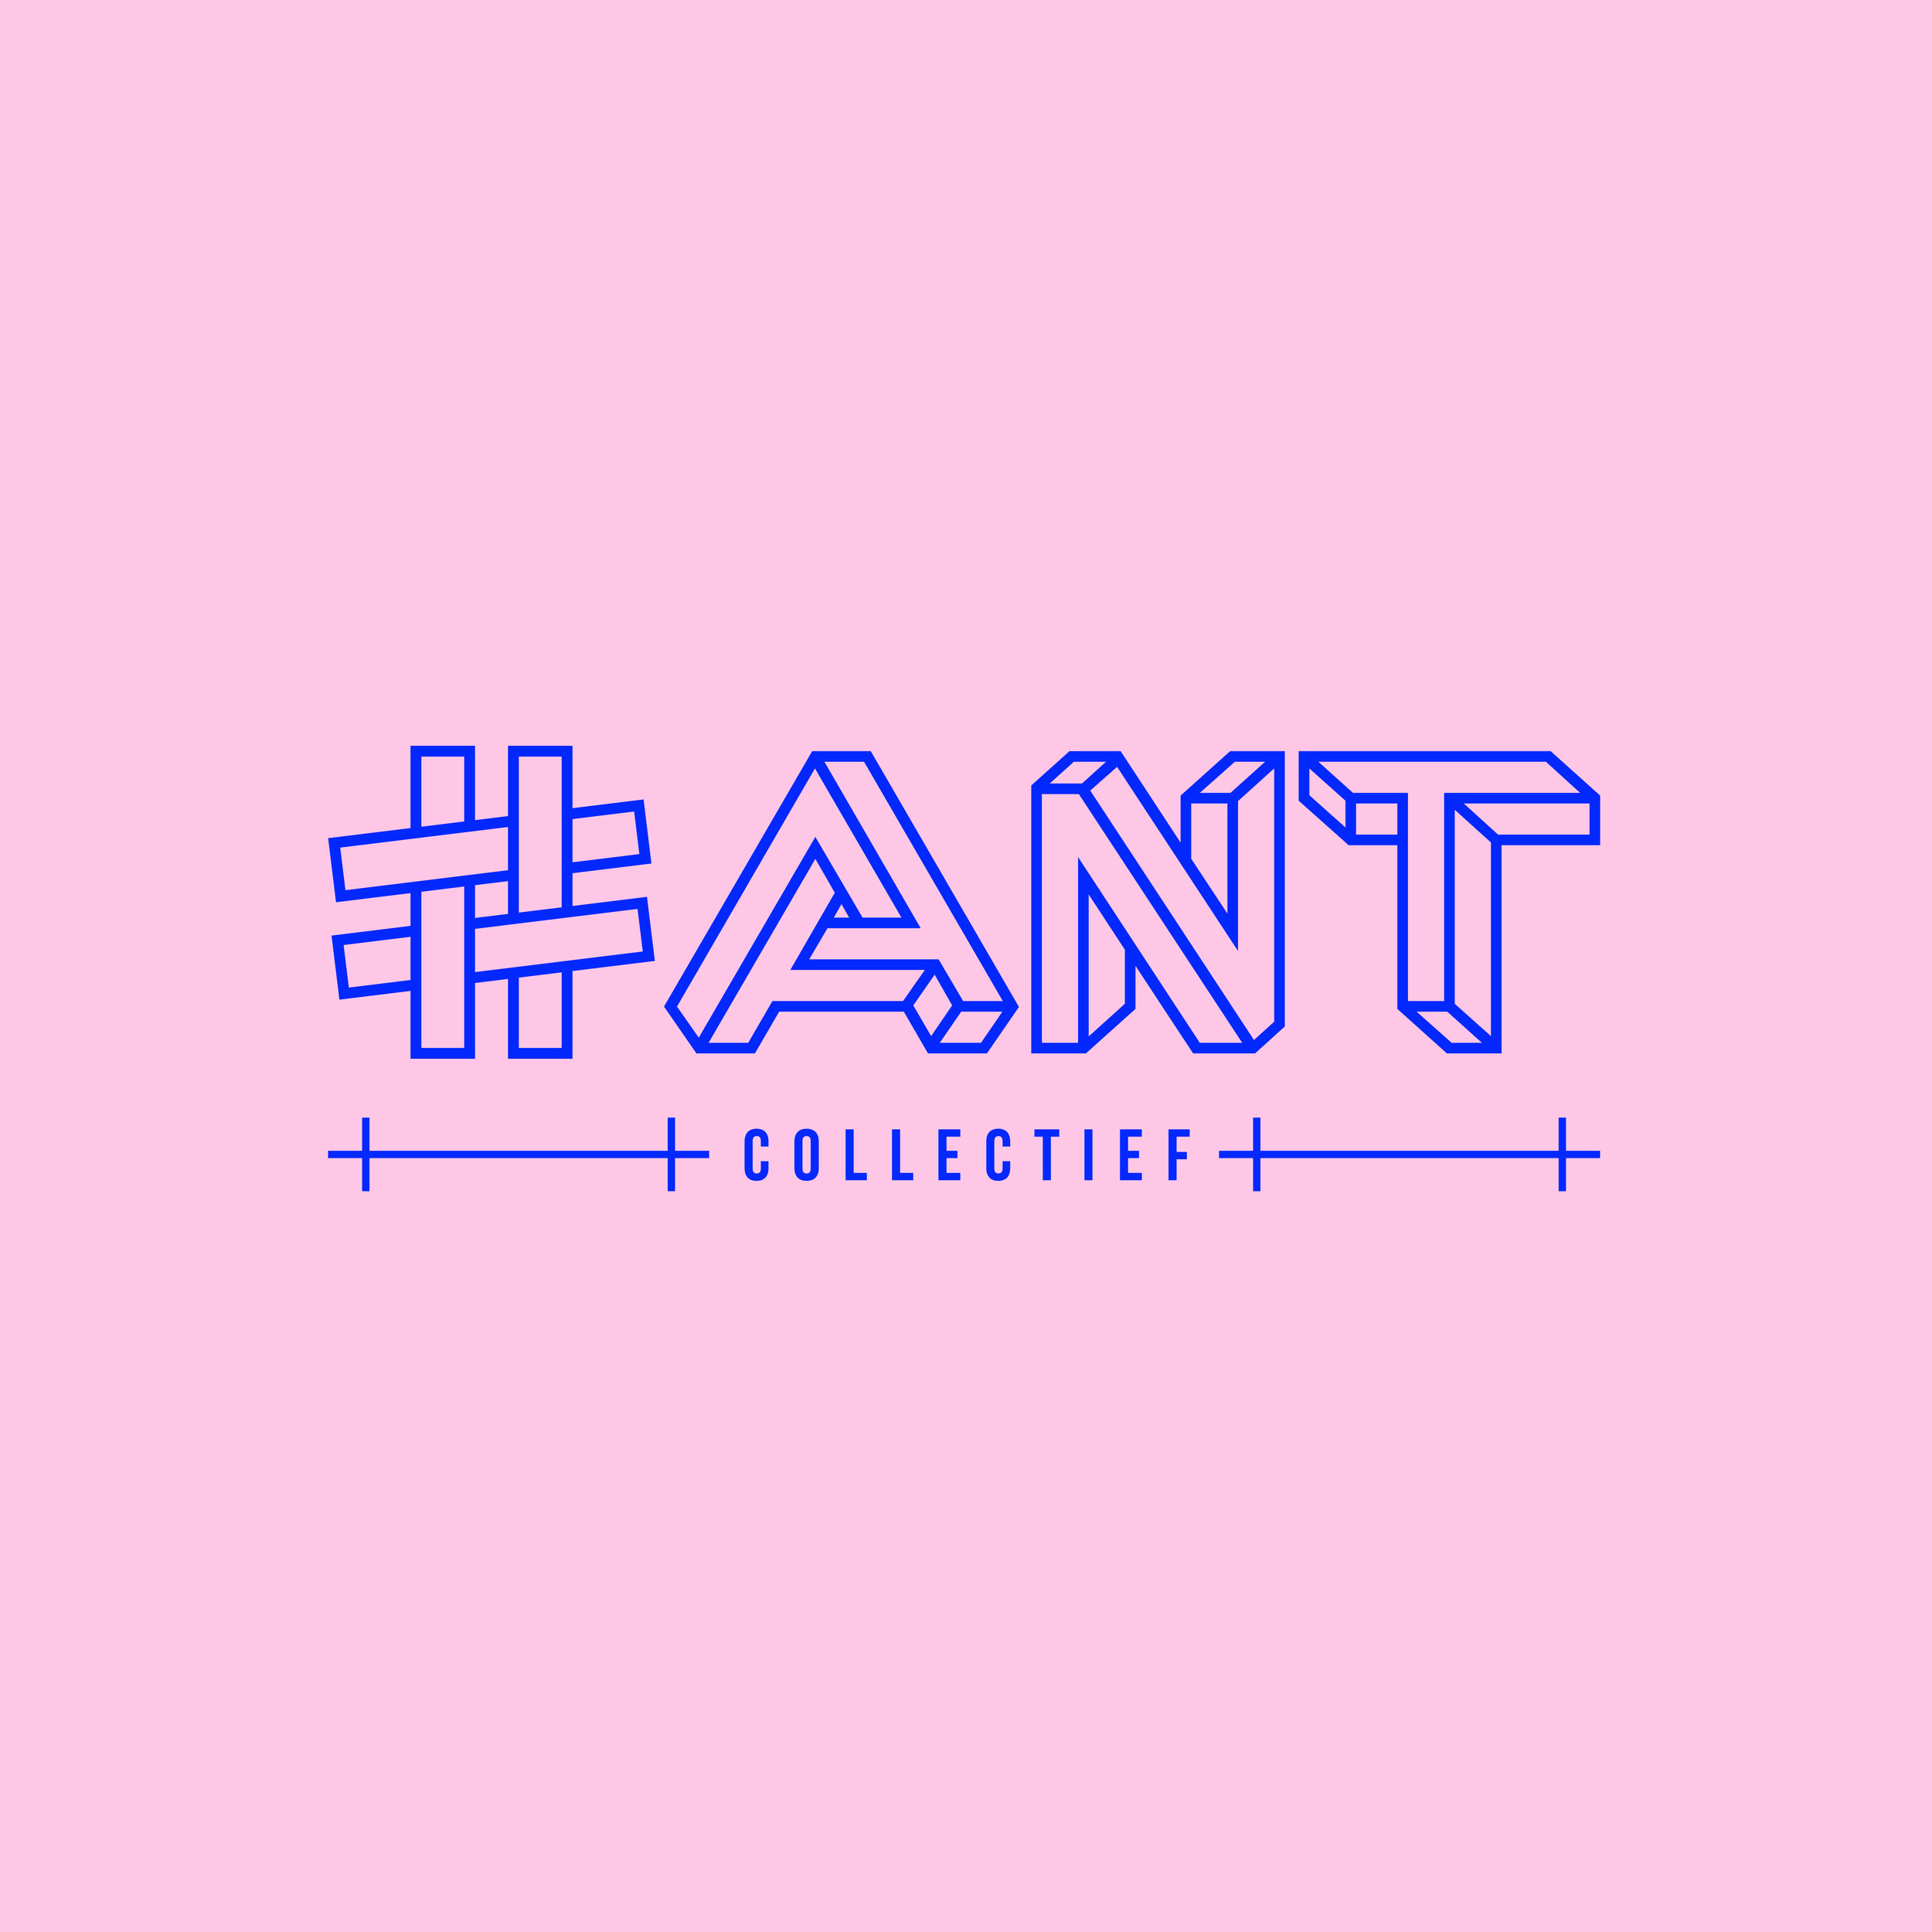 ant collectief.jpg